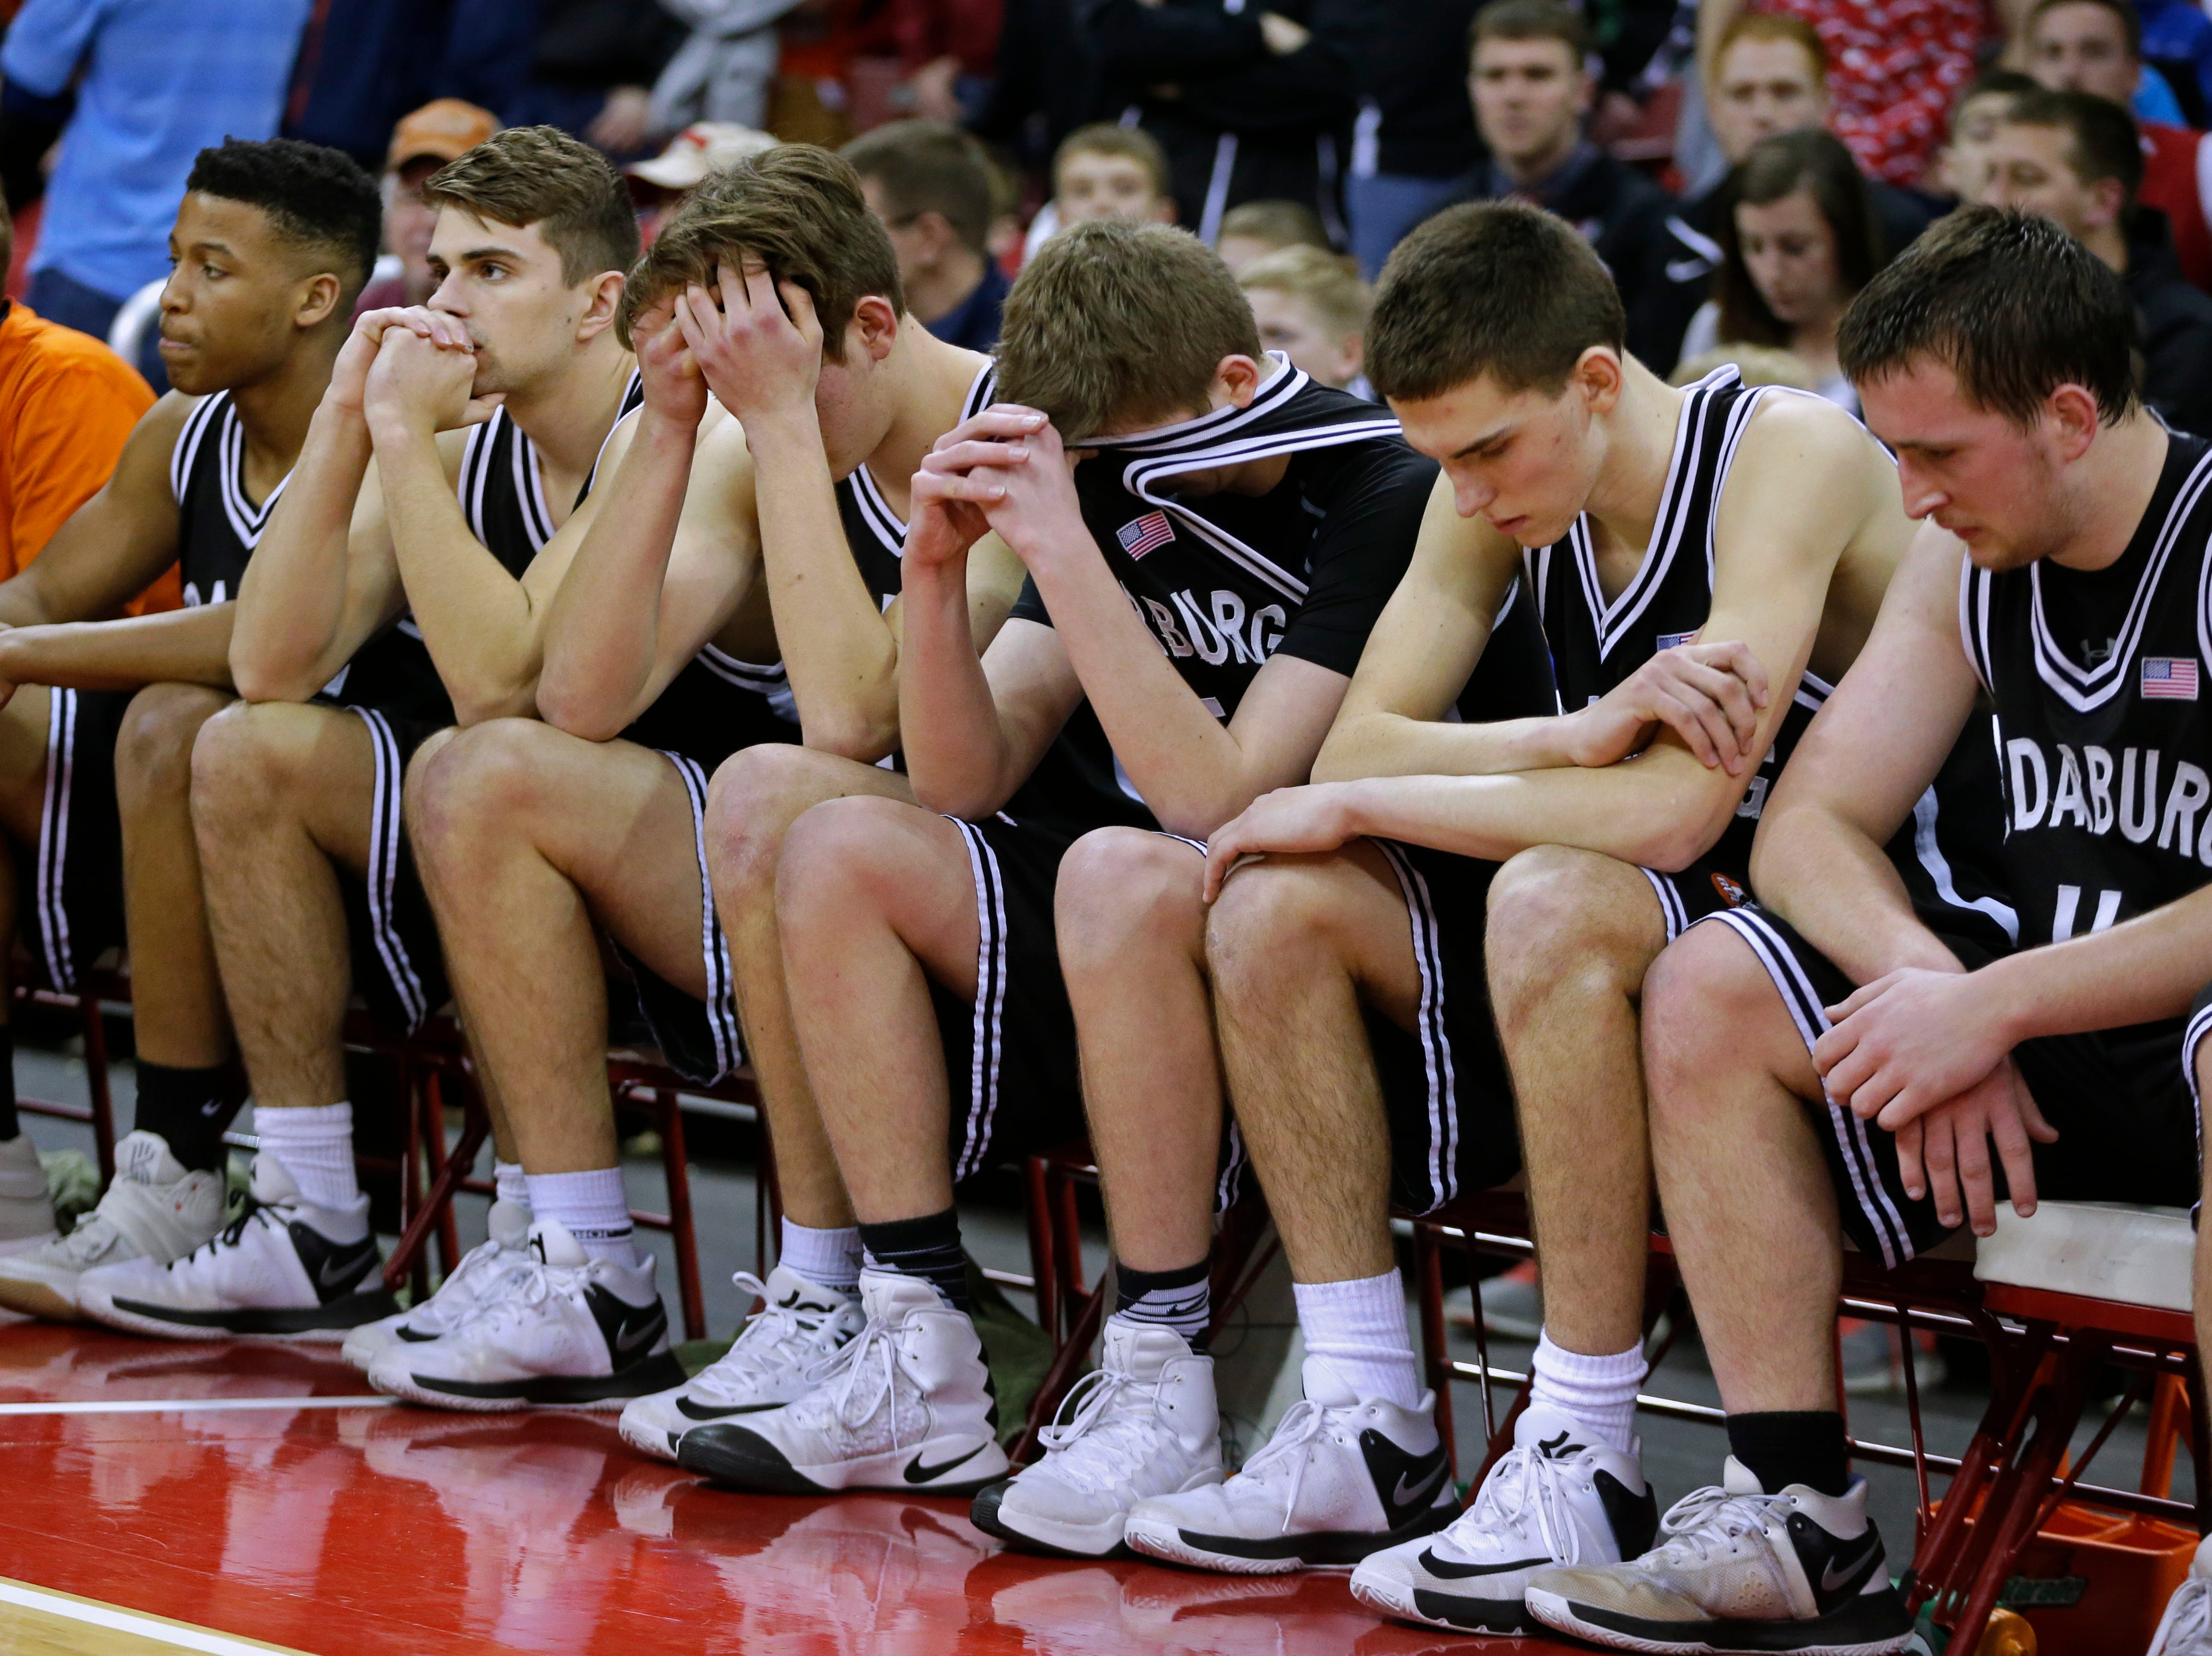 Cedarburg teammates are somber after their 55-53 loss to La Crosse Central in the 2017 Division 2 Championship  game at the WIAA boys' state basketball championships.